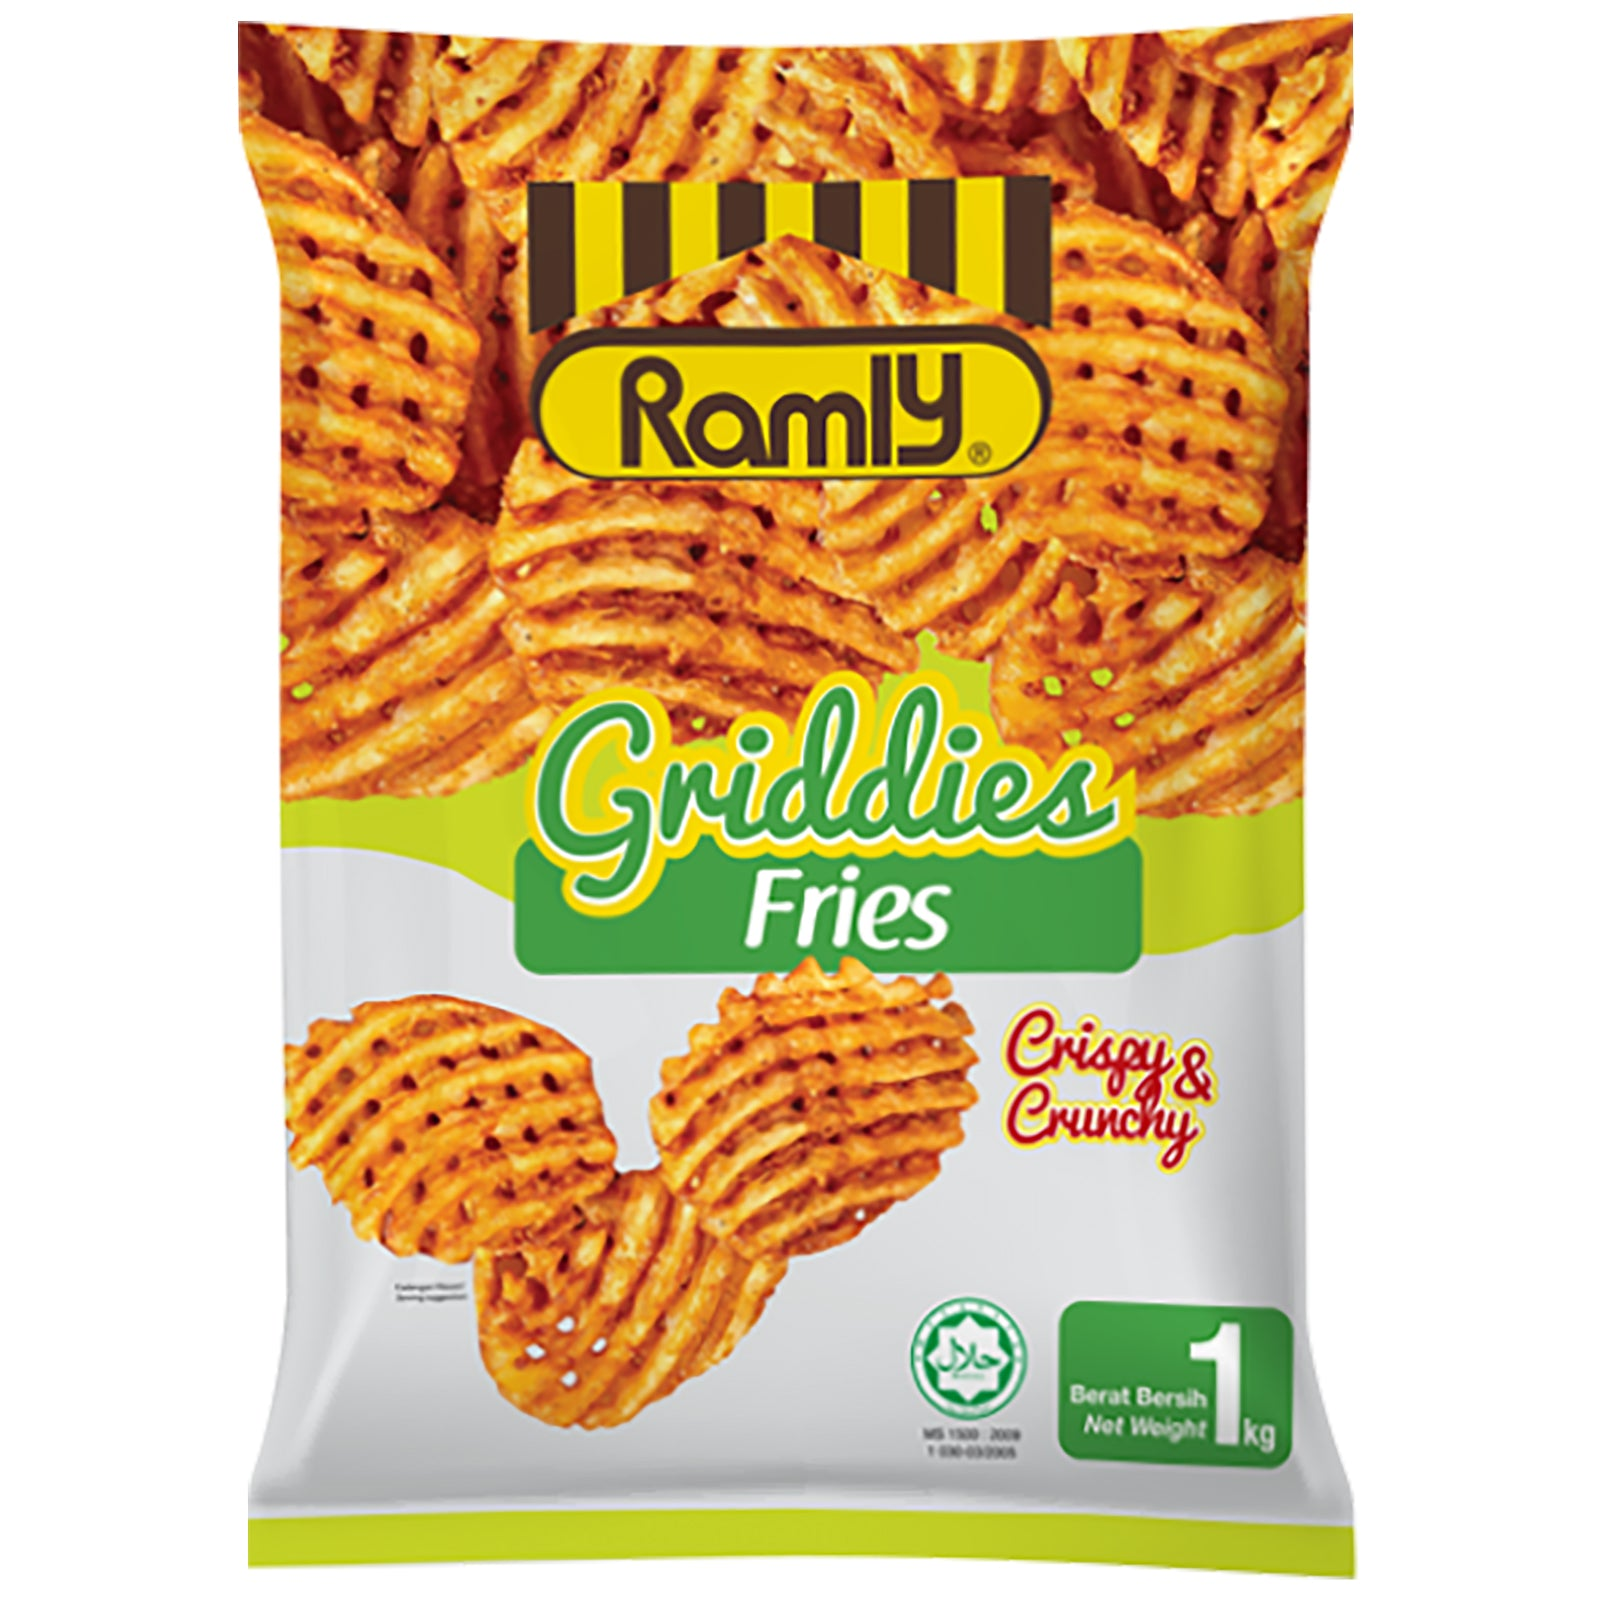 Ramly Griddies Fries